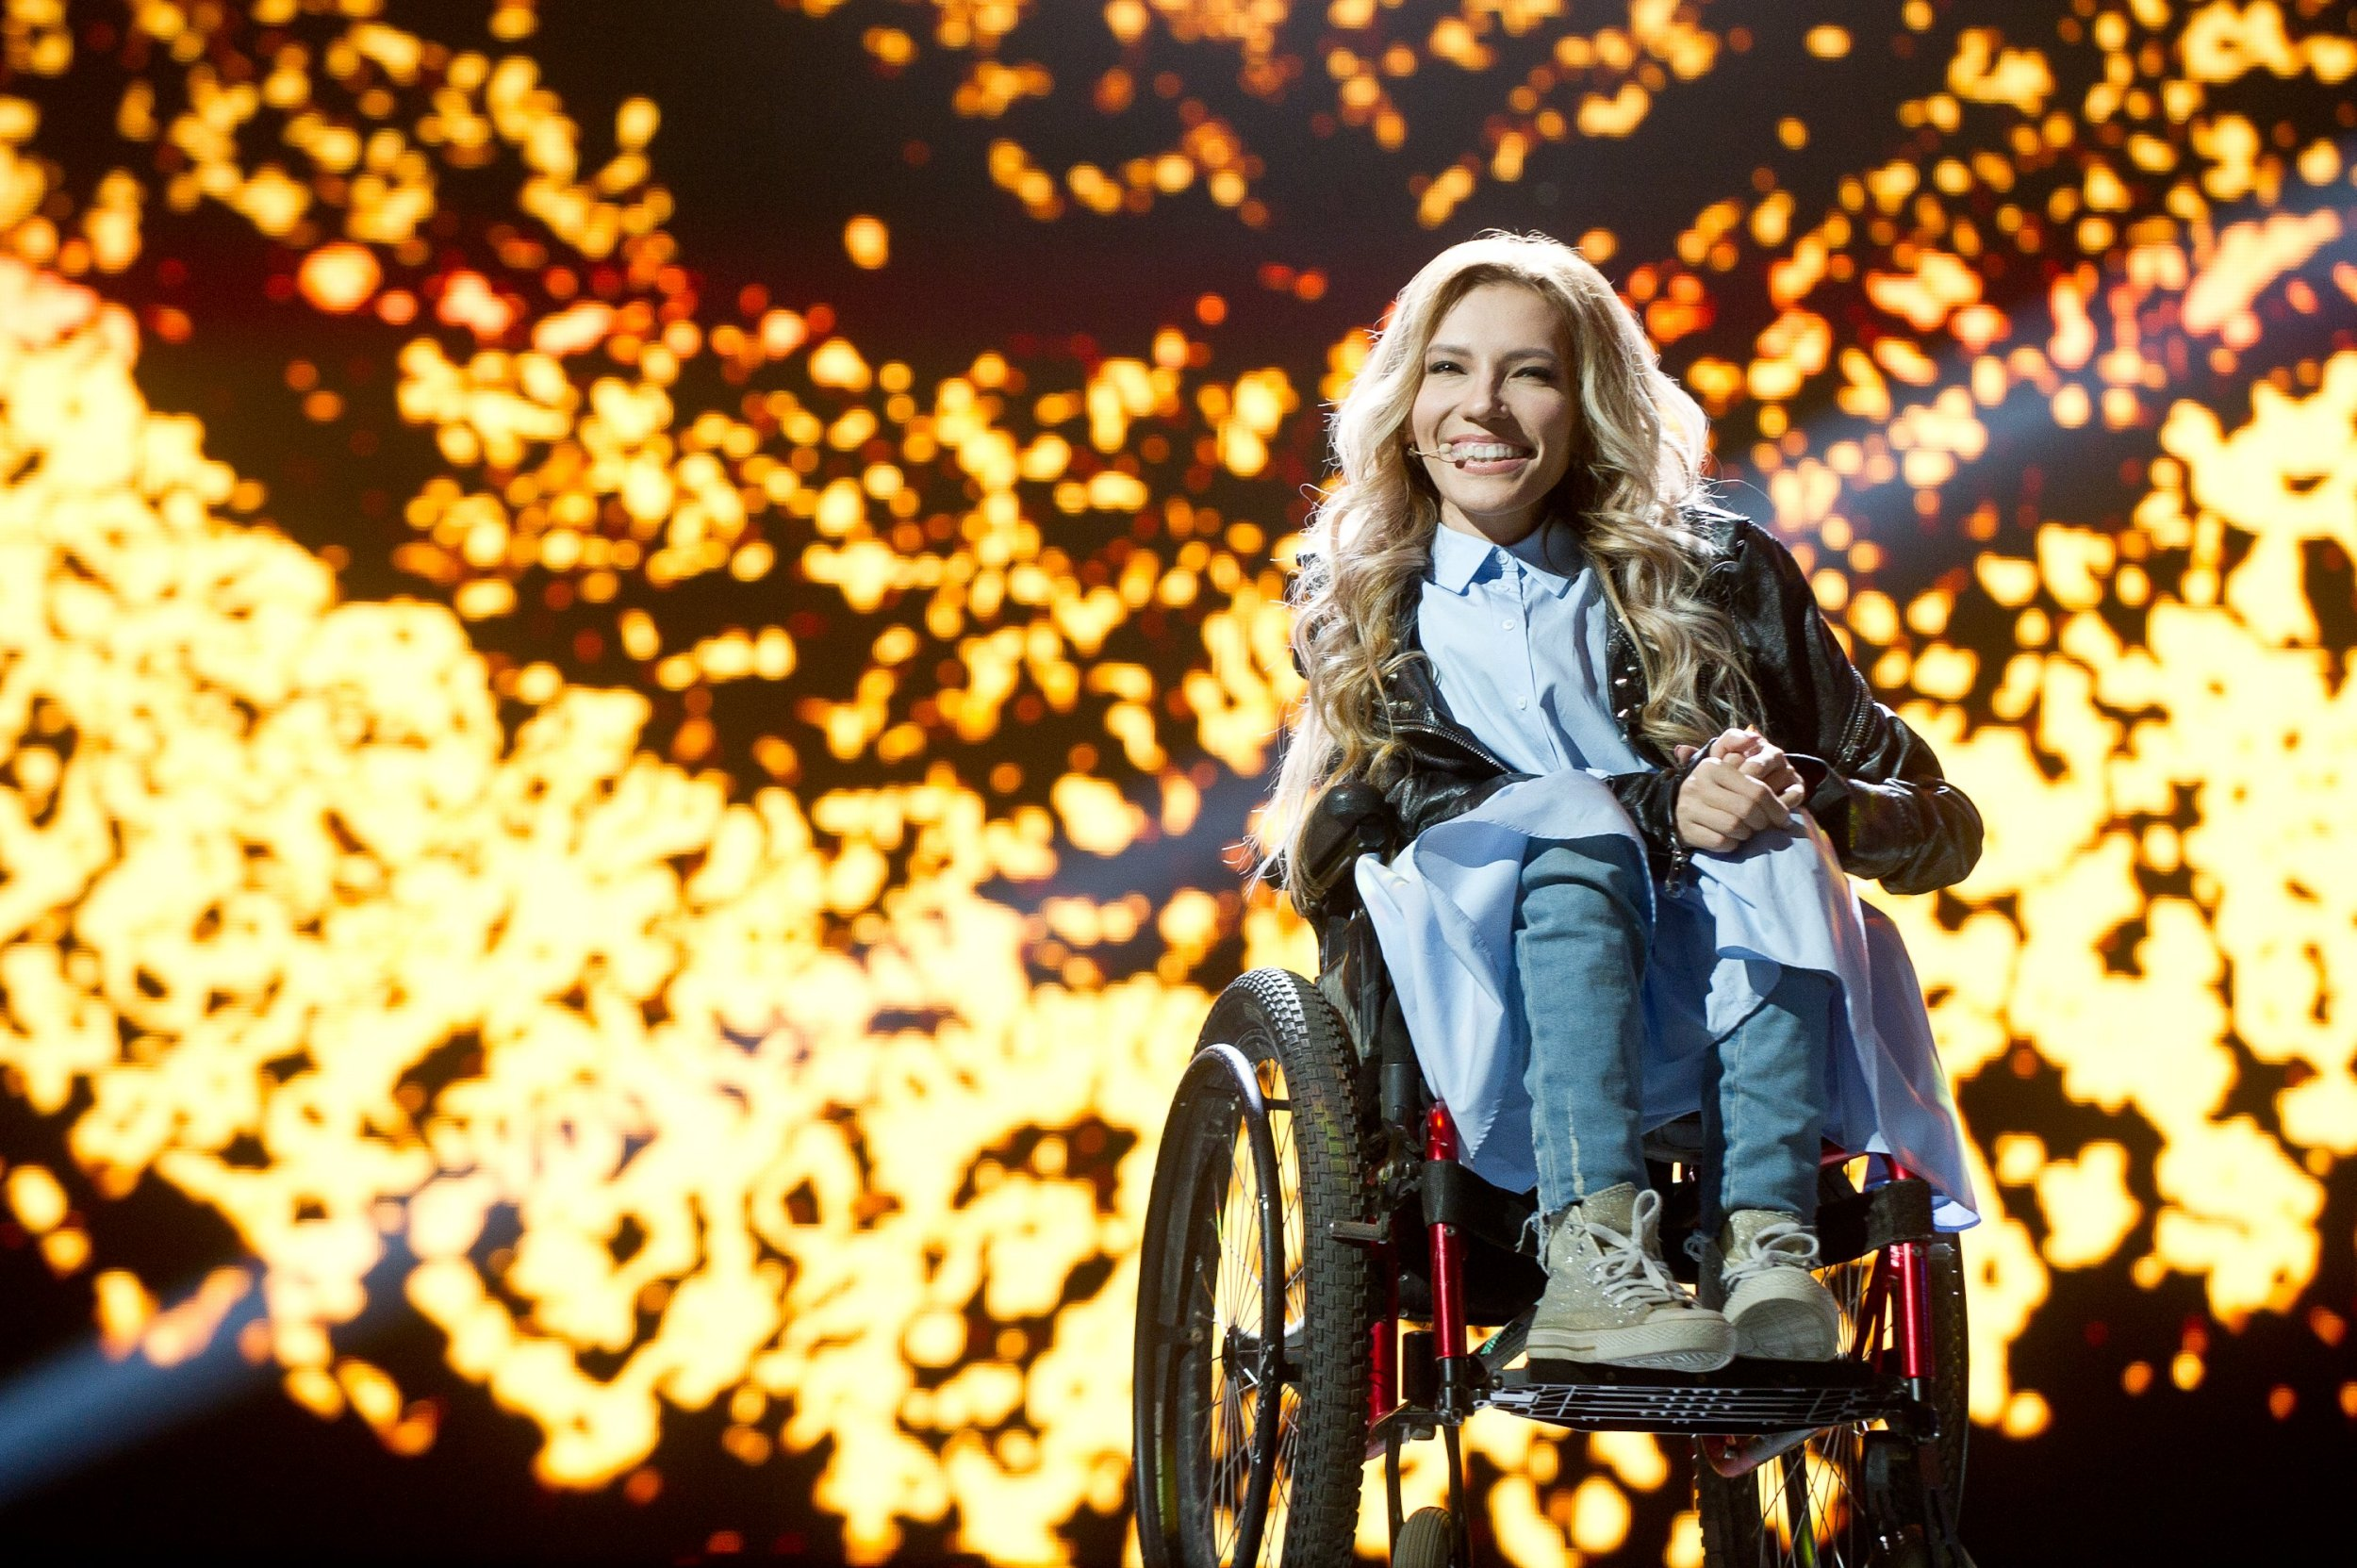 This is why Russia isn't taking part in Eurovision this year